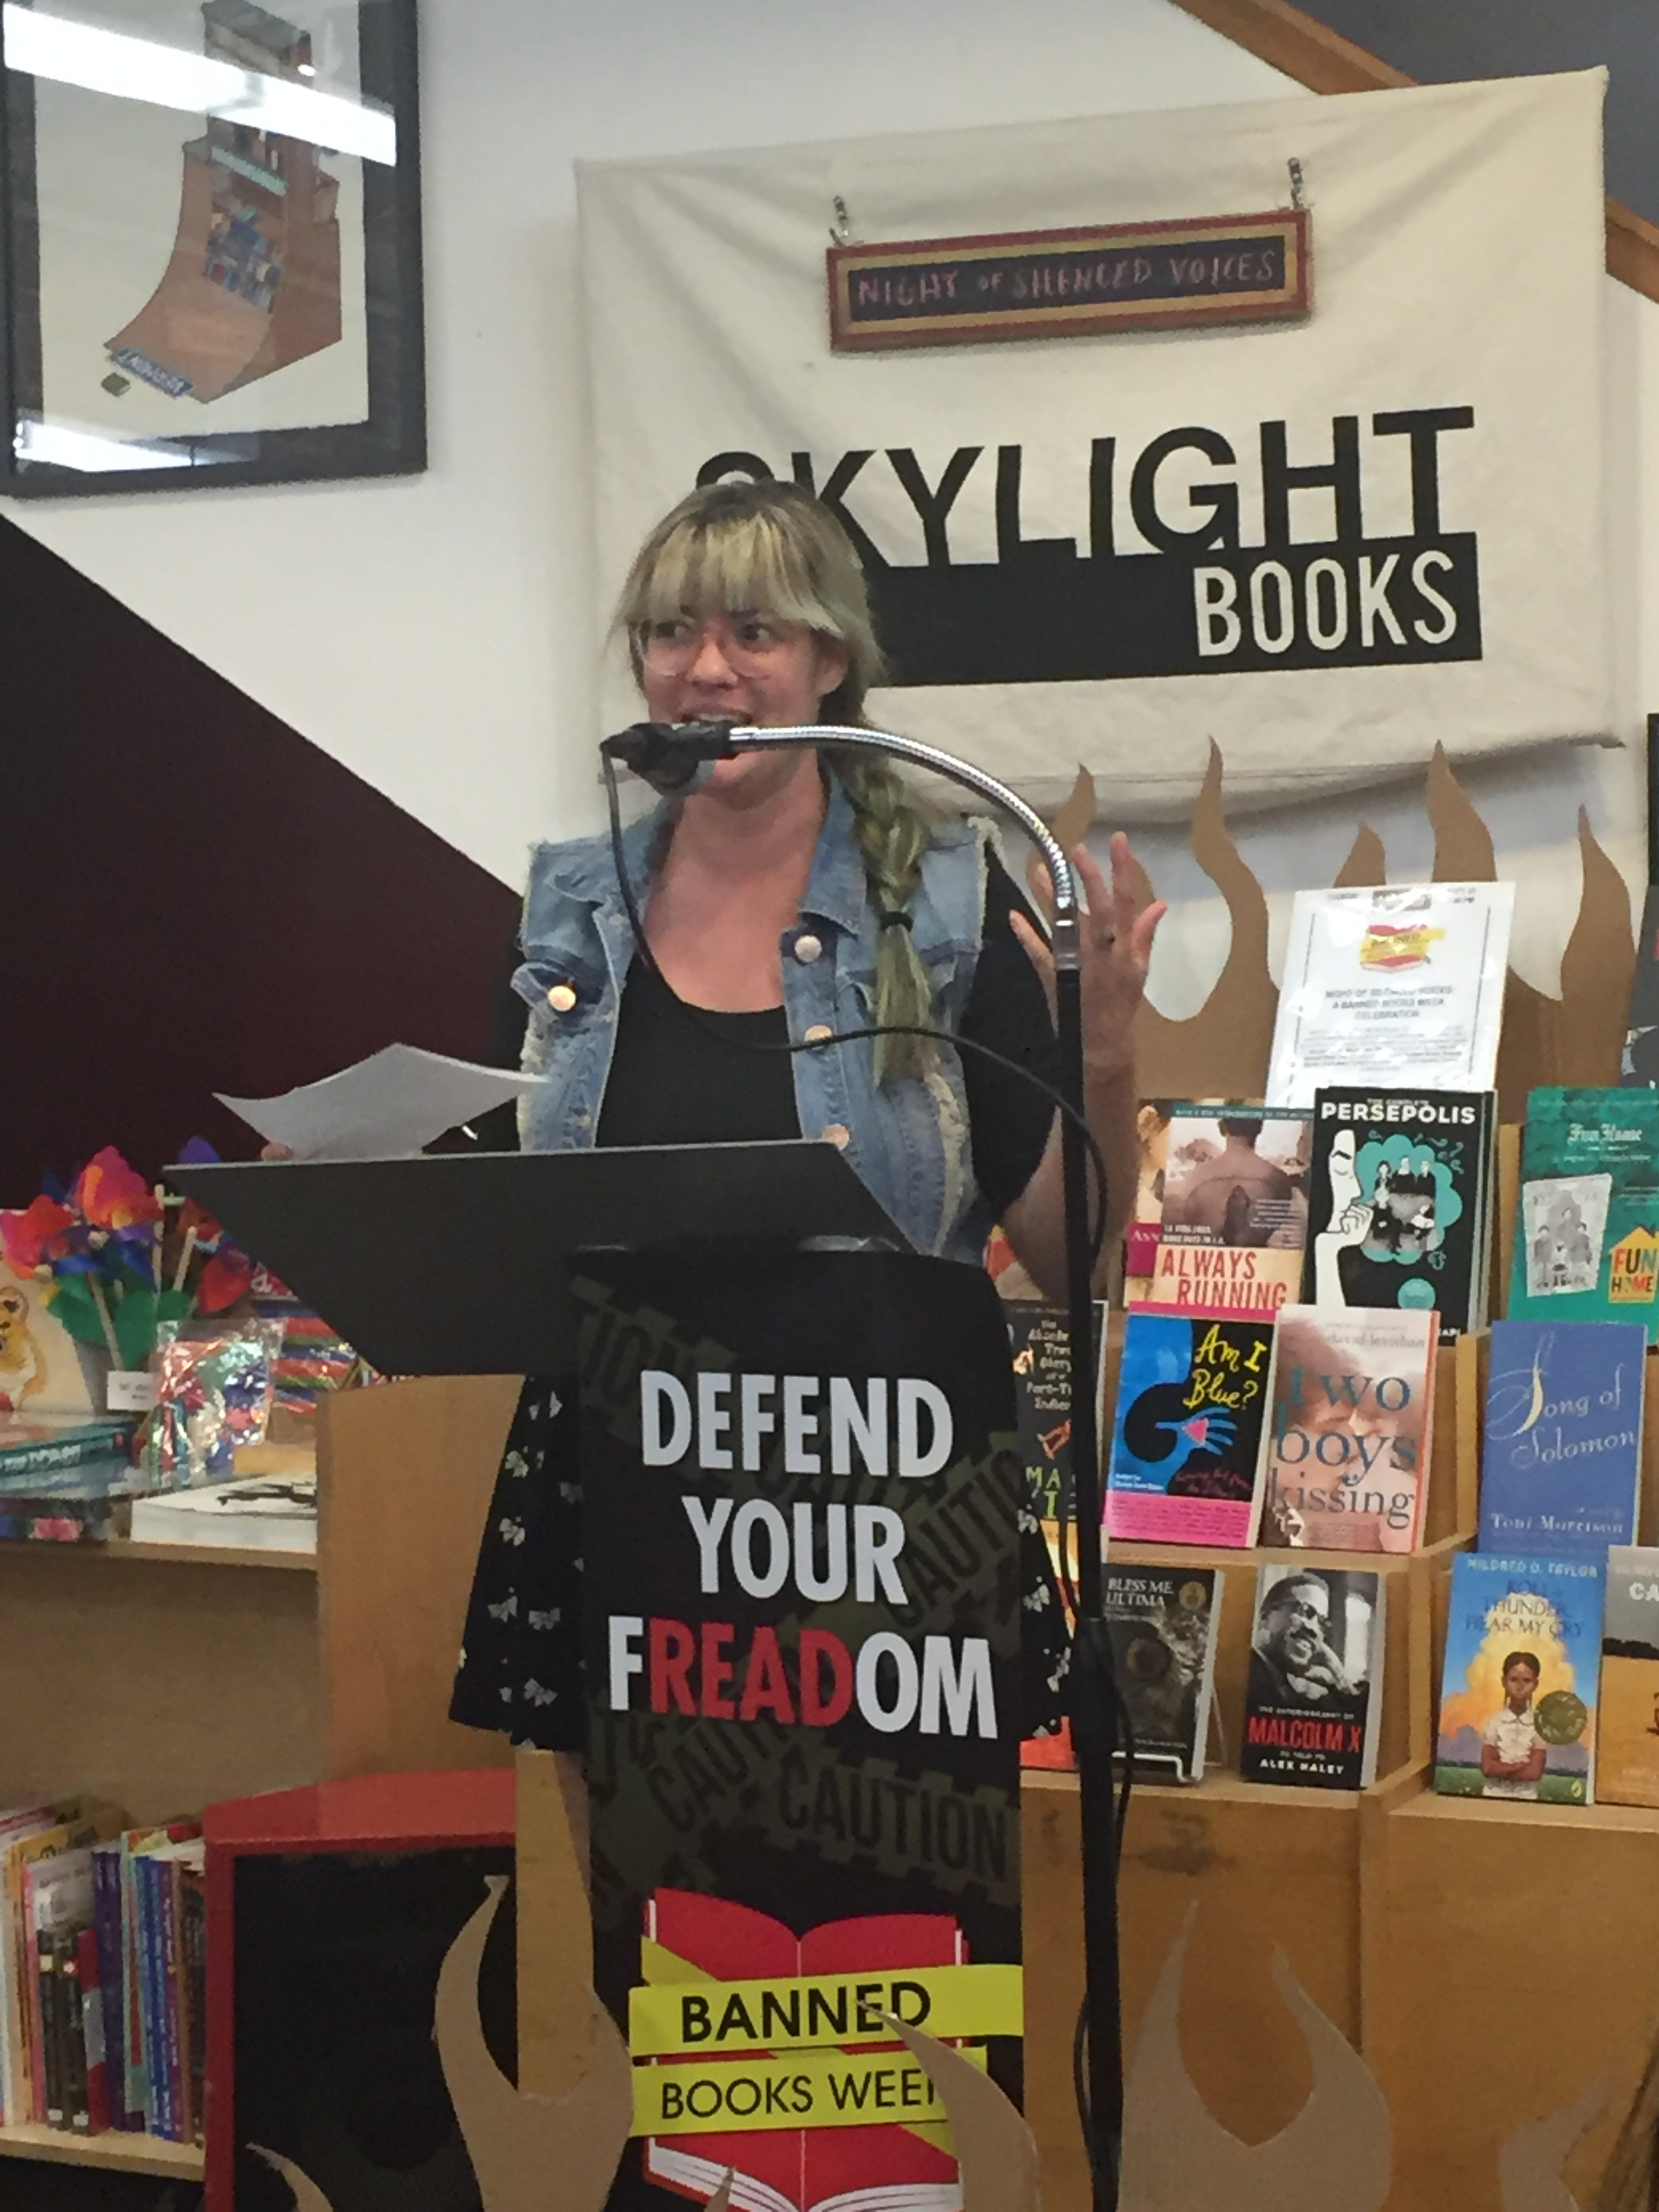 Kelsey Nolan, Skylight Books assistant events manager.